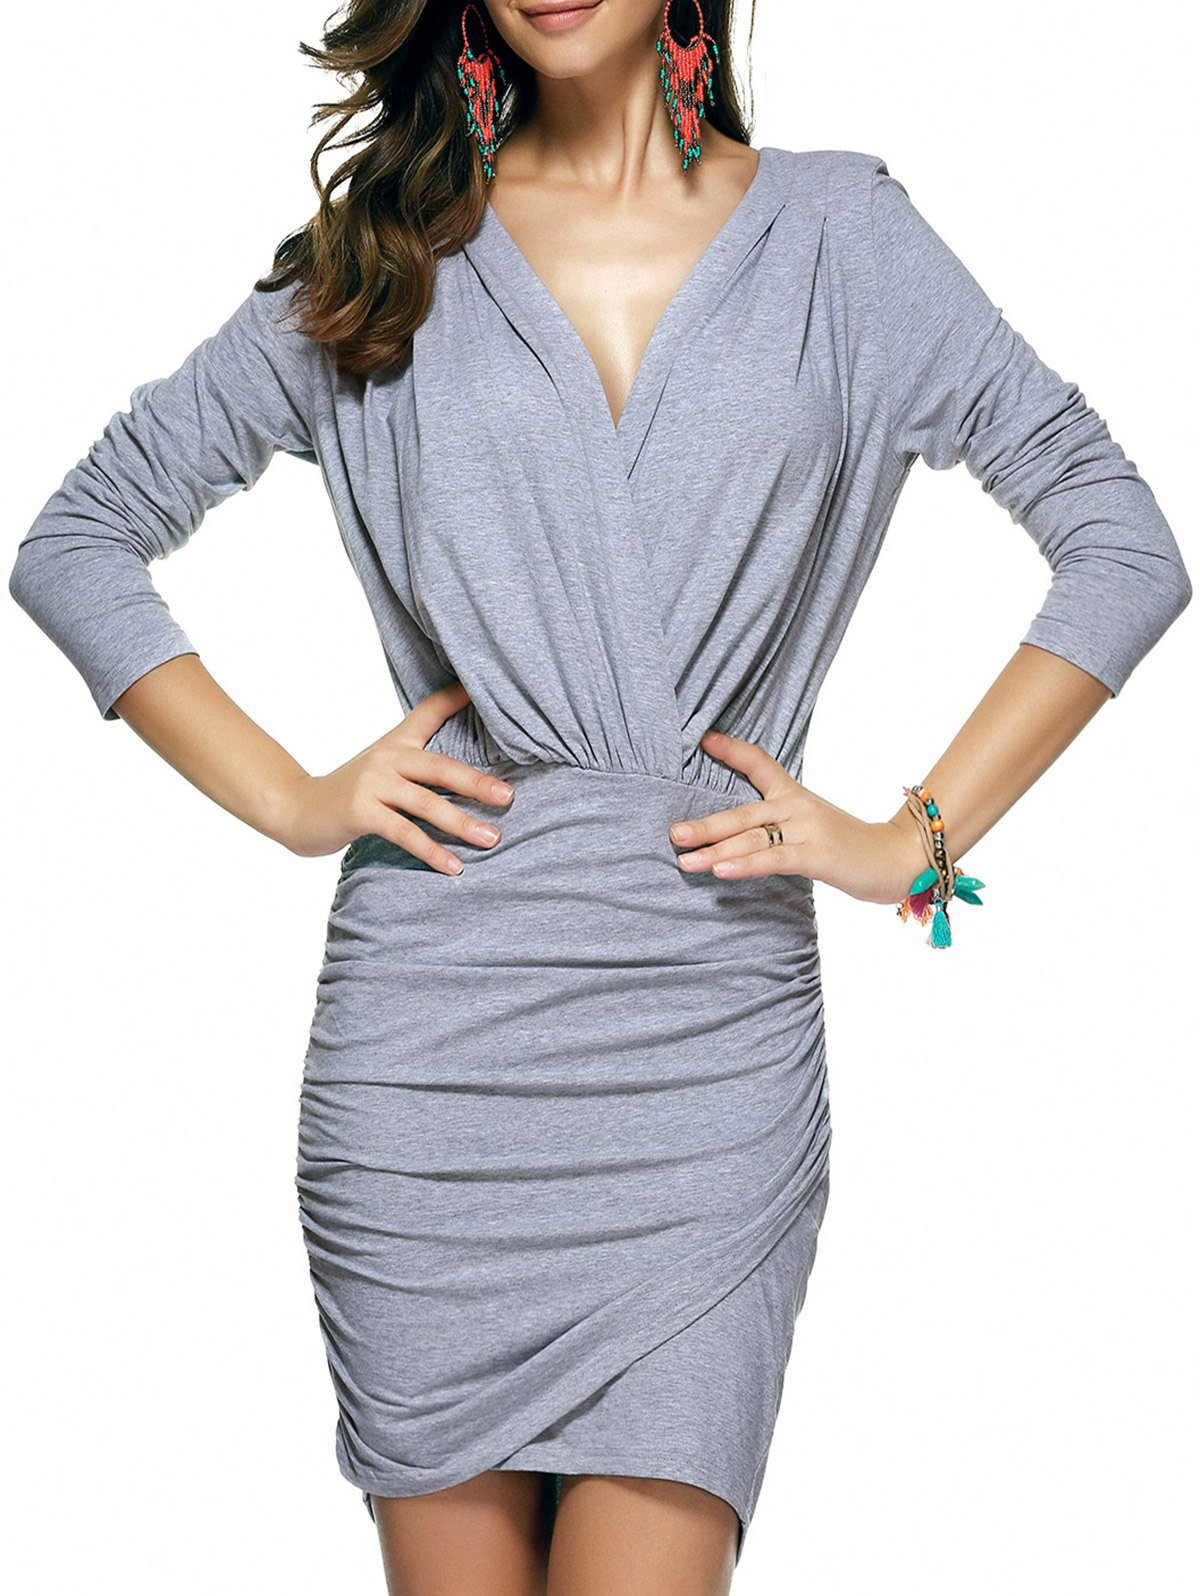 Low Cut Ruched Dress